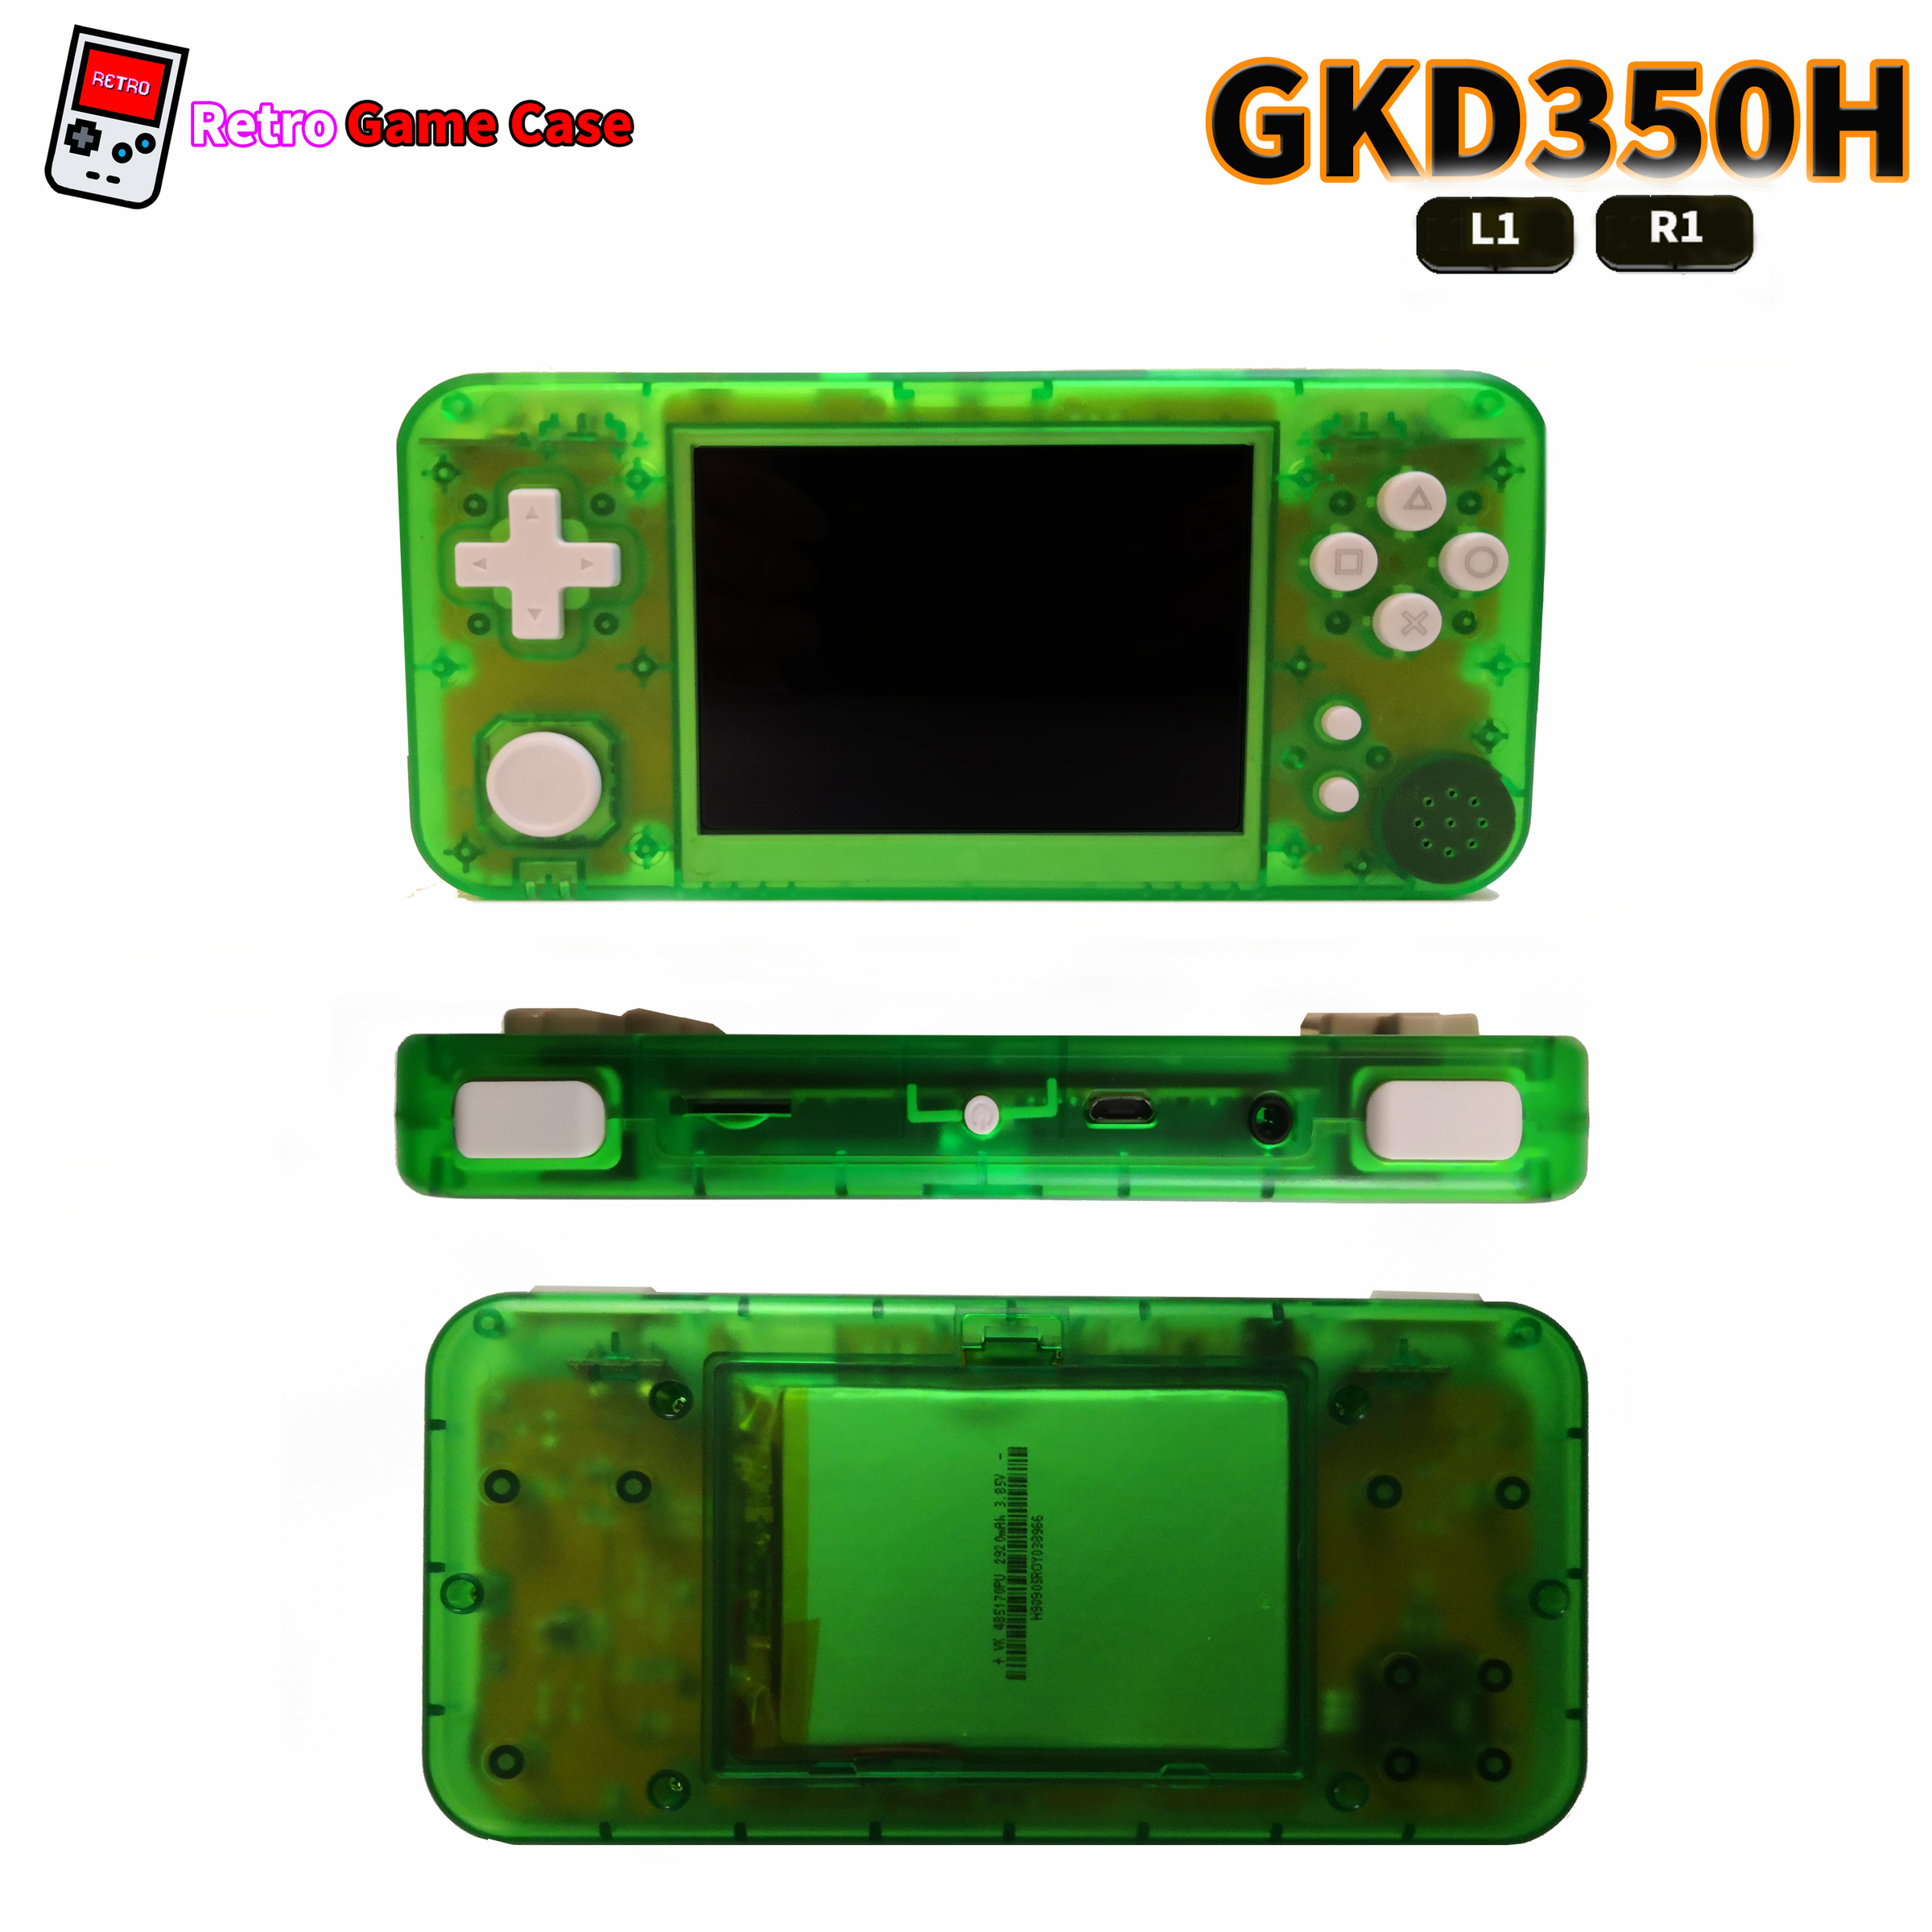 My_retro_game_case_Game_Kiddy_GKD350H_green_console_lr1.jpg